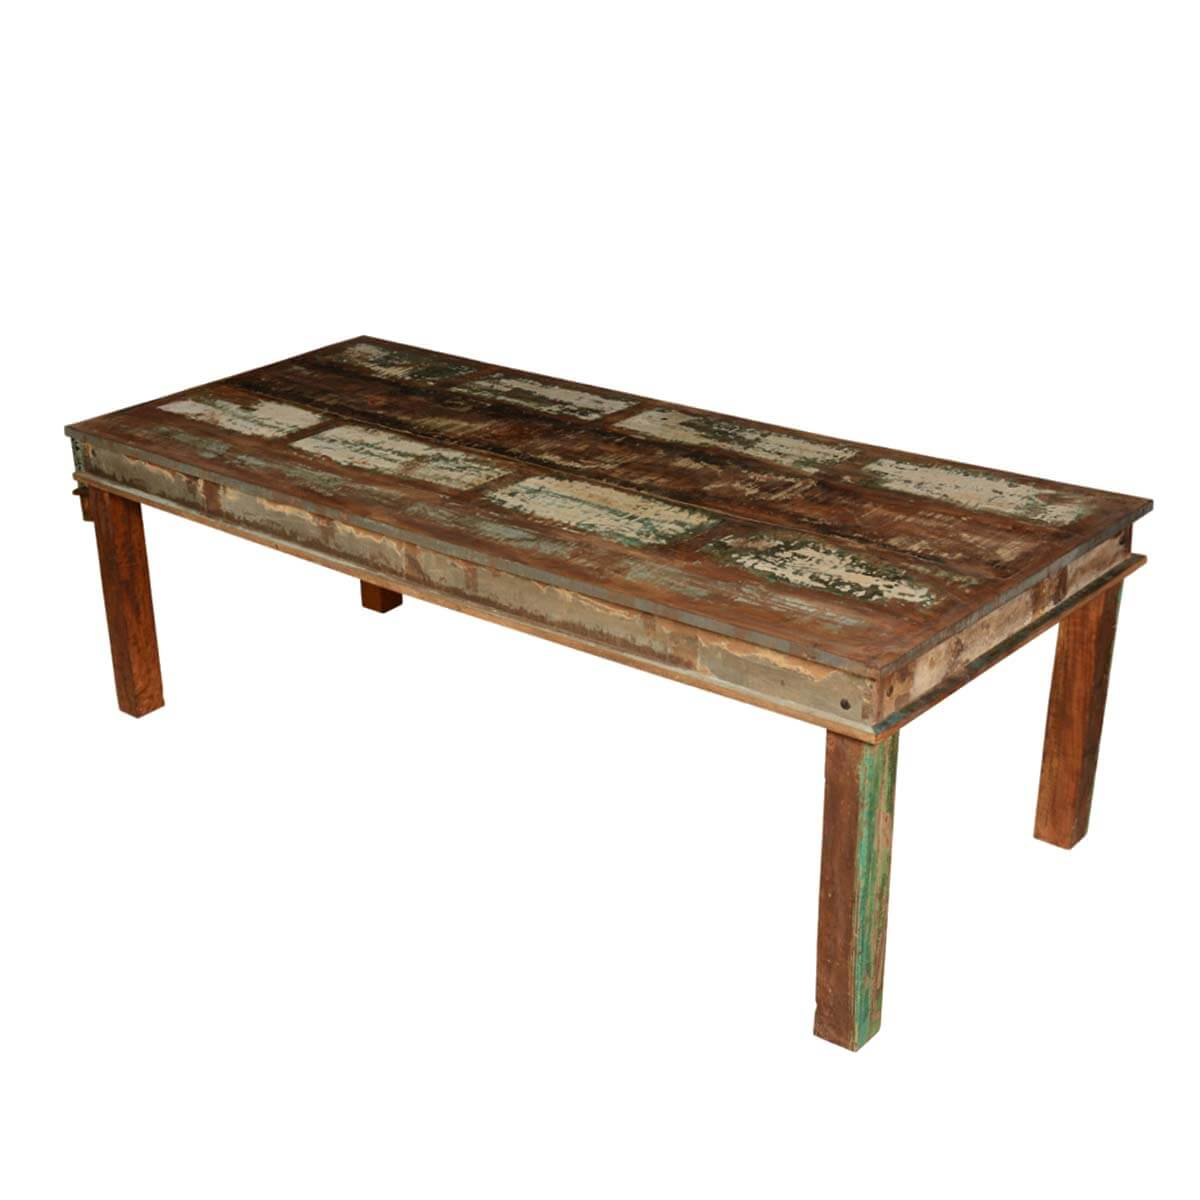 Appalachian distressed reclaimed wood 96 rustic dining table for Dining table